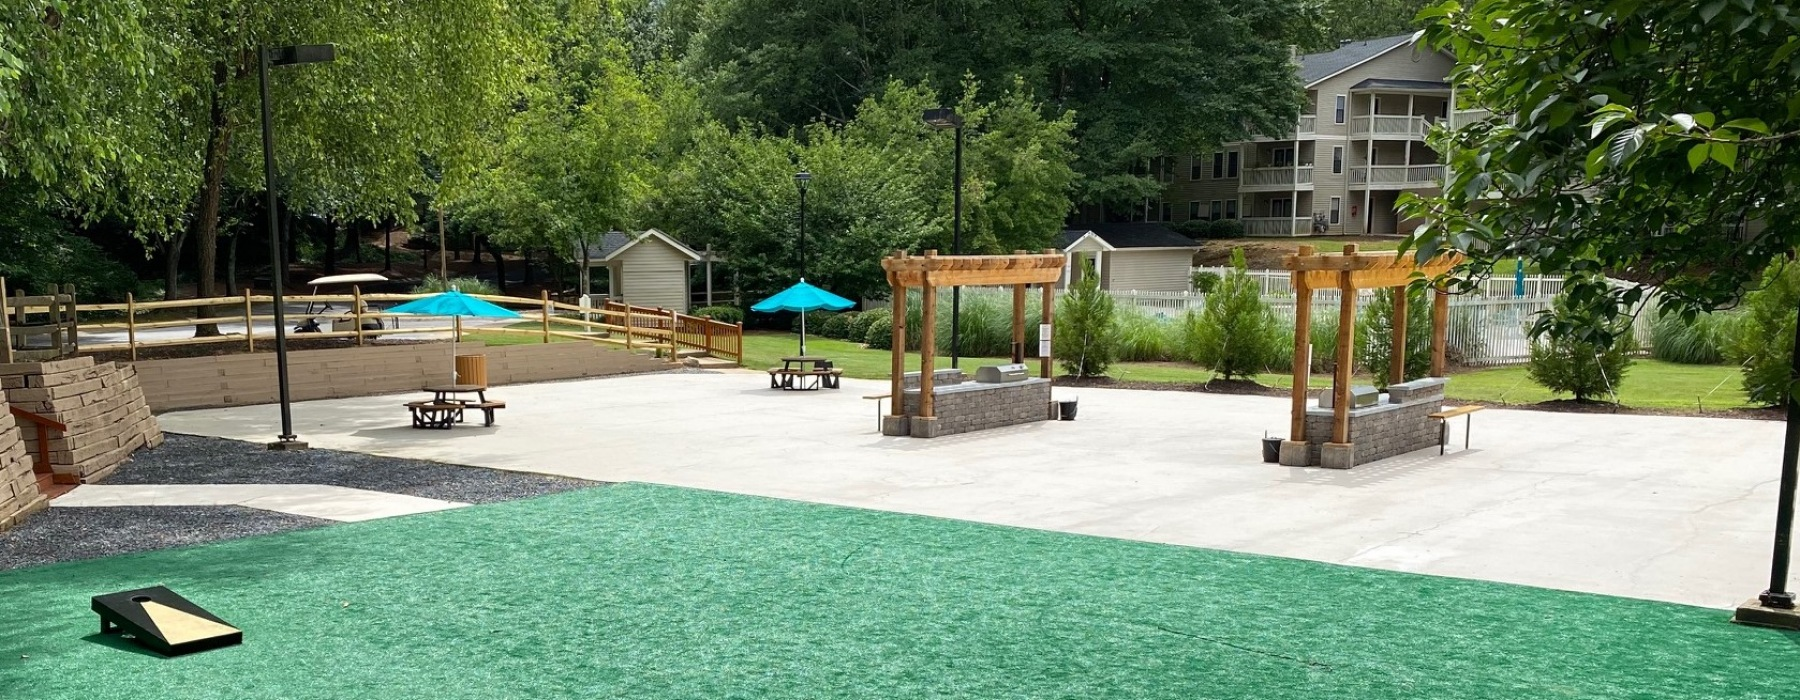 Large patio with artificial grass, corn hole game, pergolas, and lounge furniture